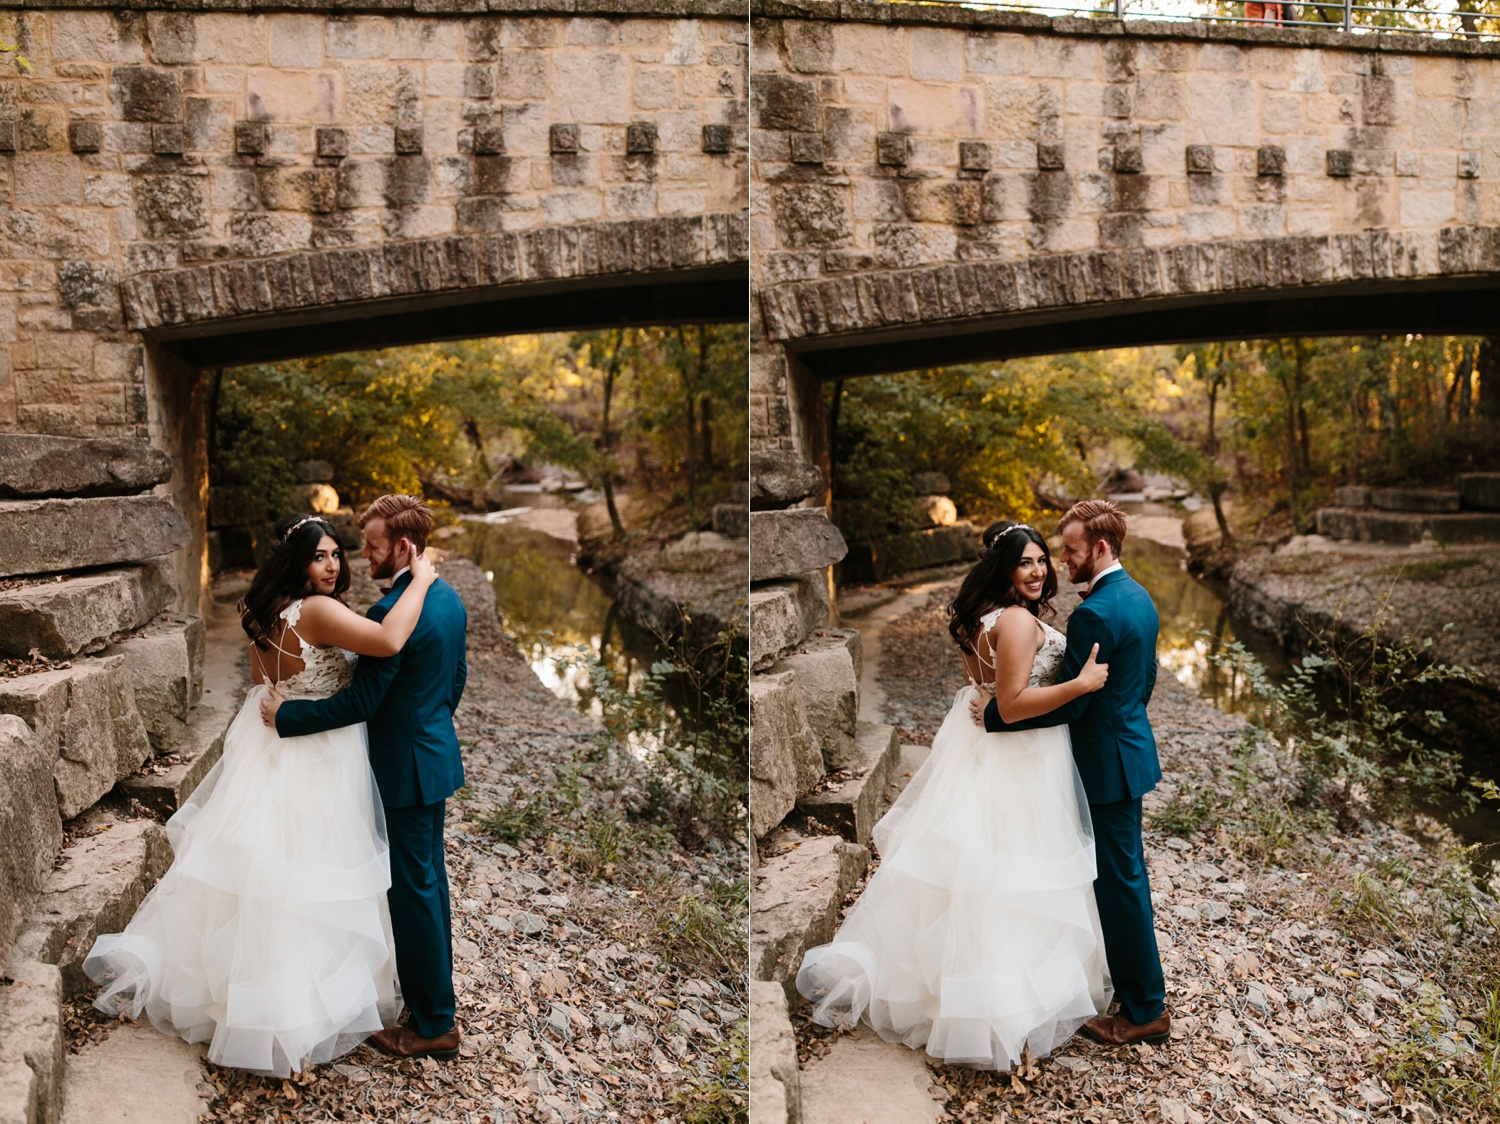 Grant + Lysette | a vibrant, deep burgundy and navy, and mixed metals wedding at Hidden Pines Chapel by North Texas Wedding Photographer Rachel Meagan Photography 215